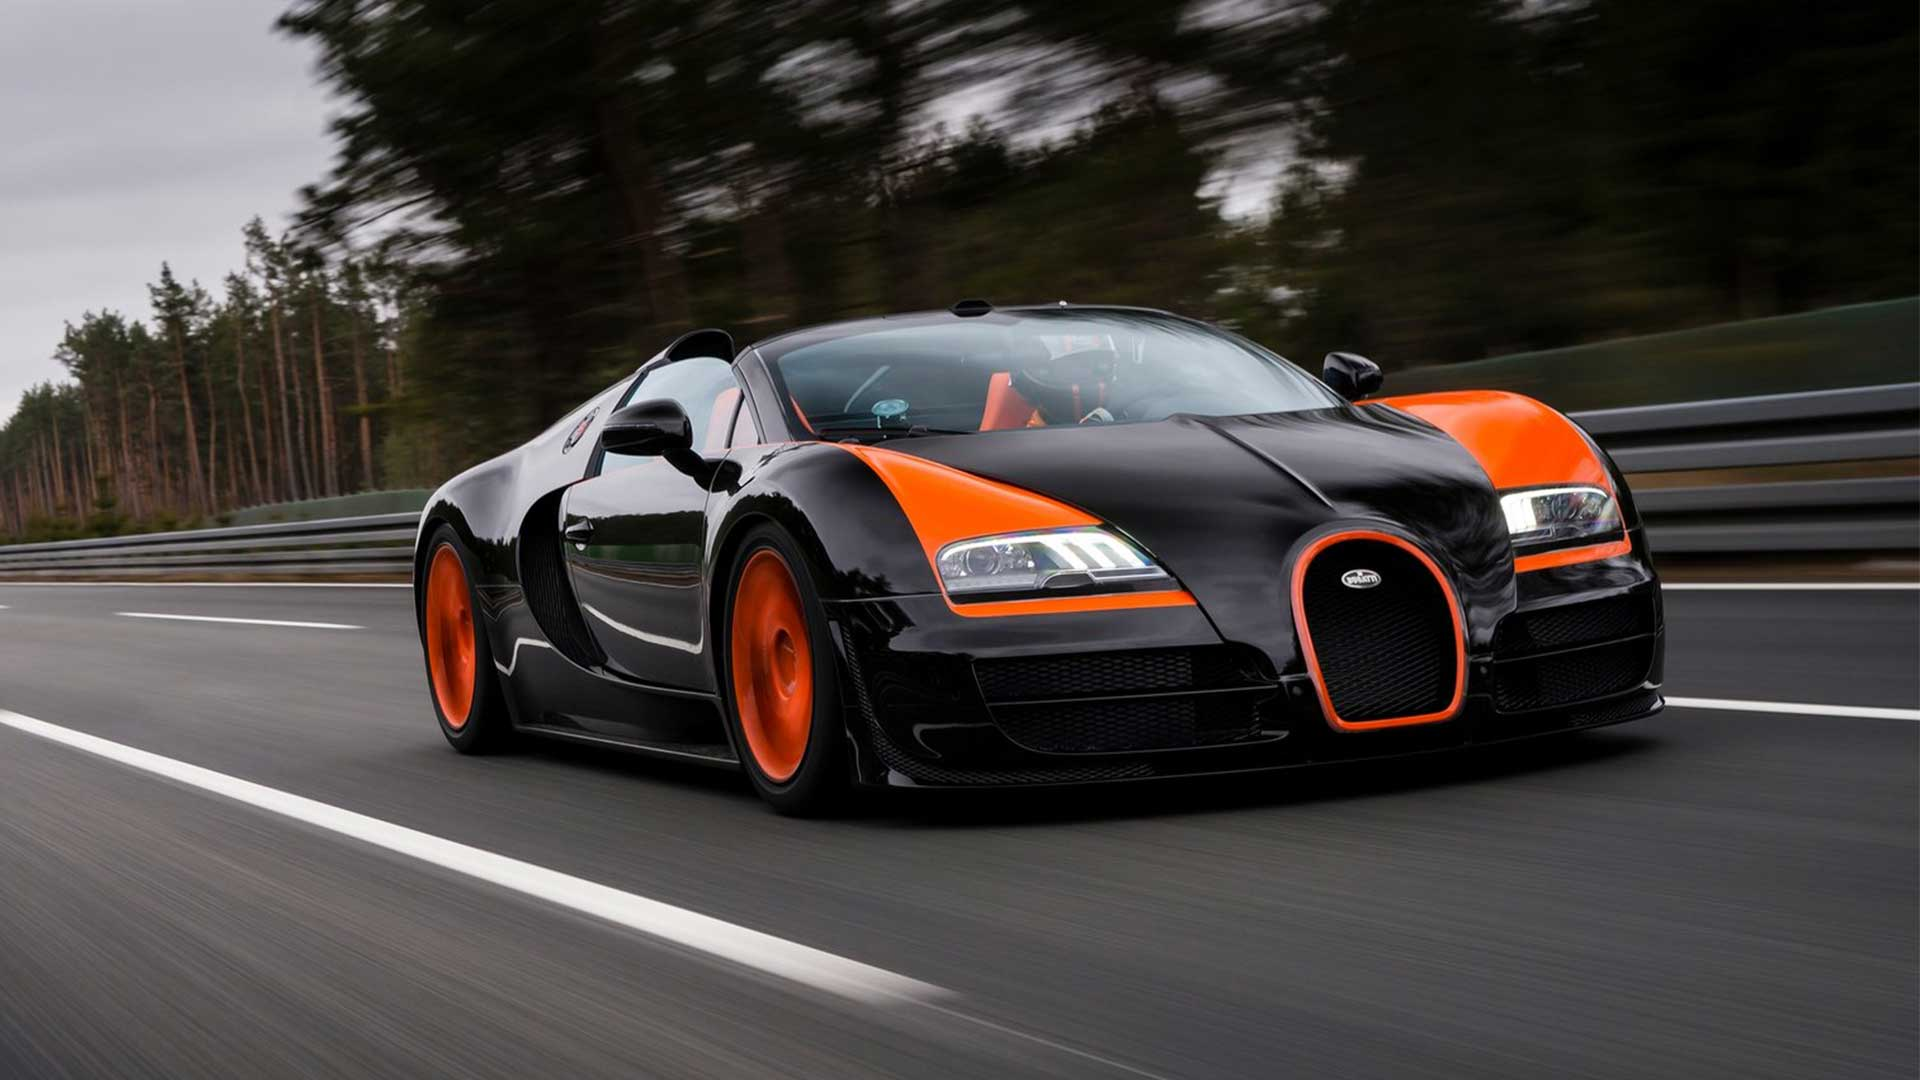 Fastest Car In The World Wallpaper 2015 Bugatti Veyron Pictures And Wallpapers